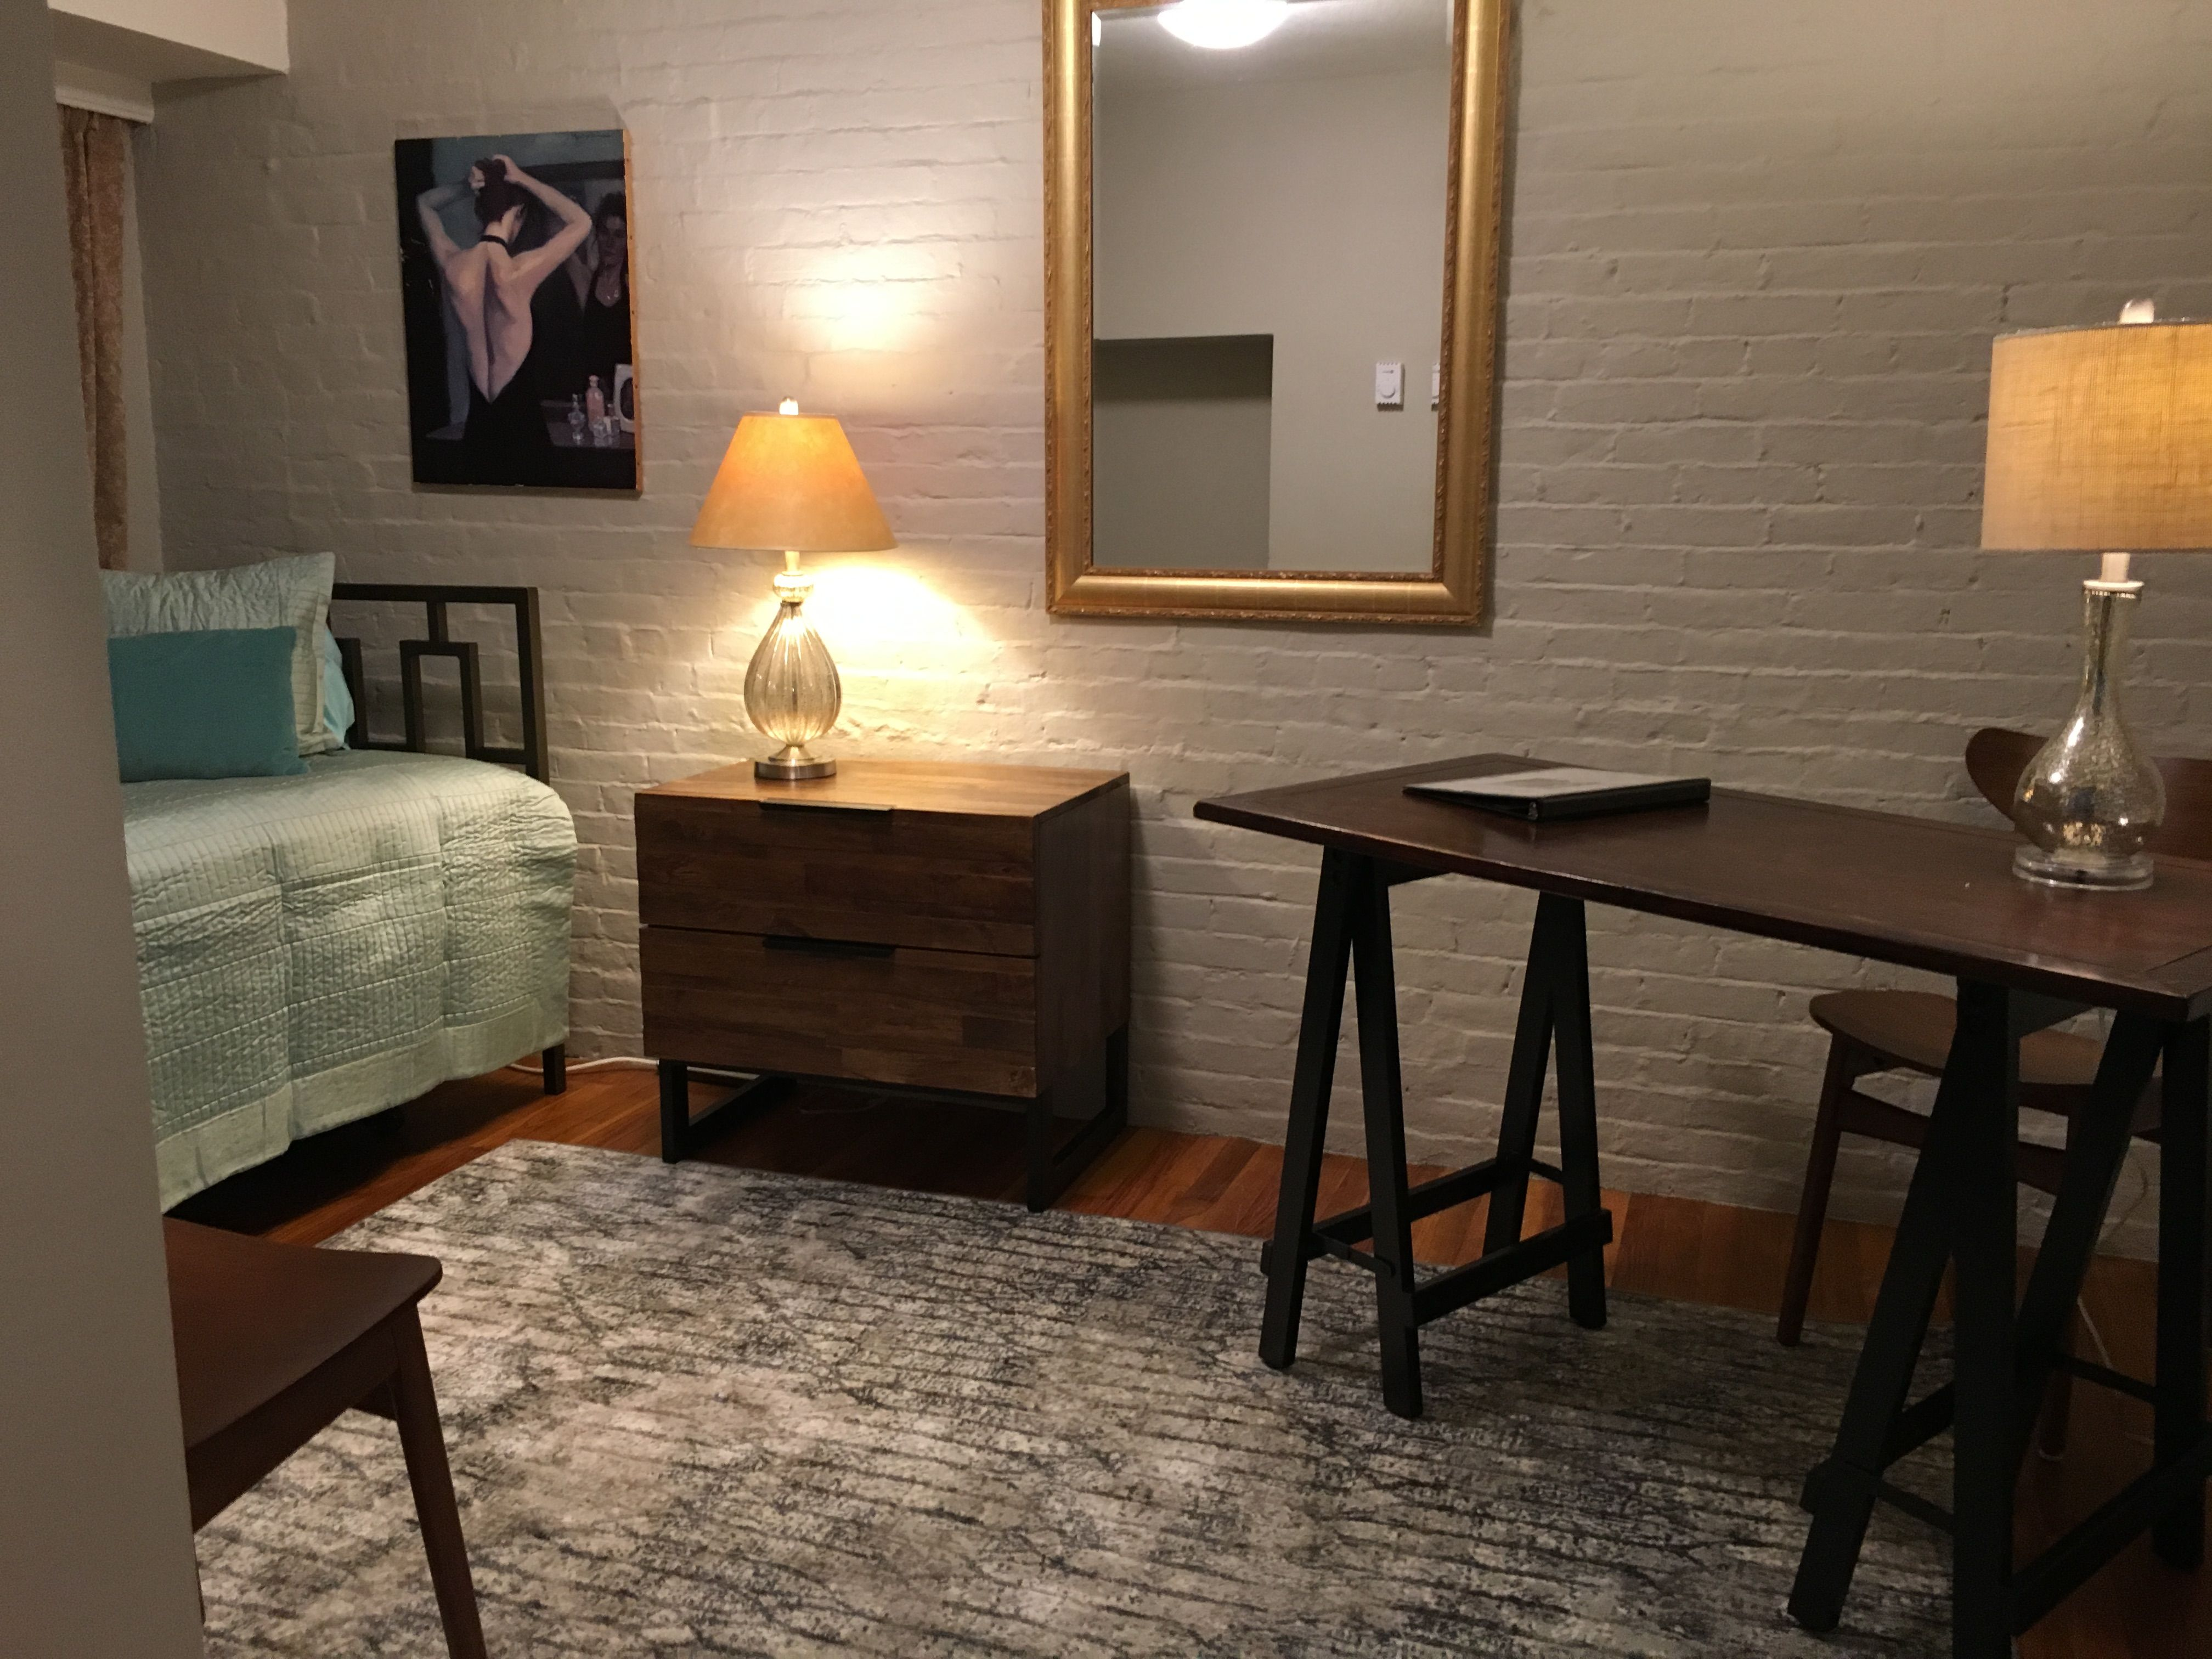 Studio apartment with an office/guest room alcove